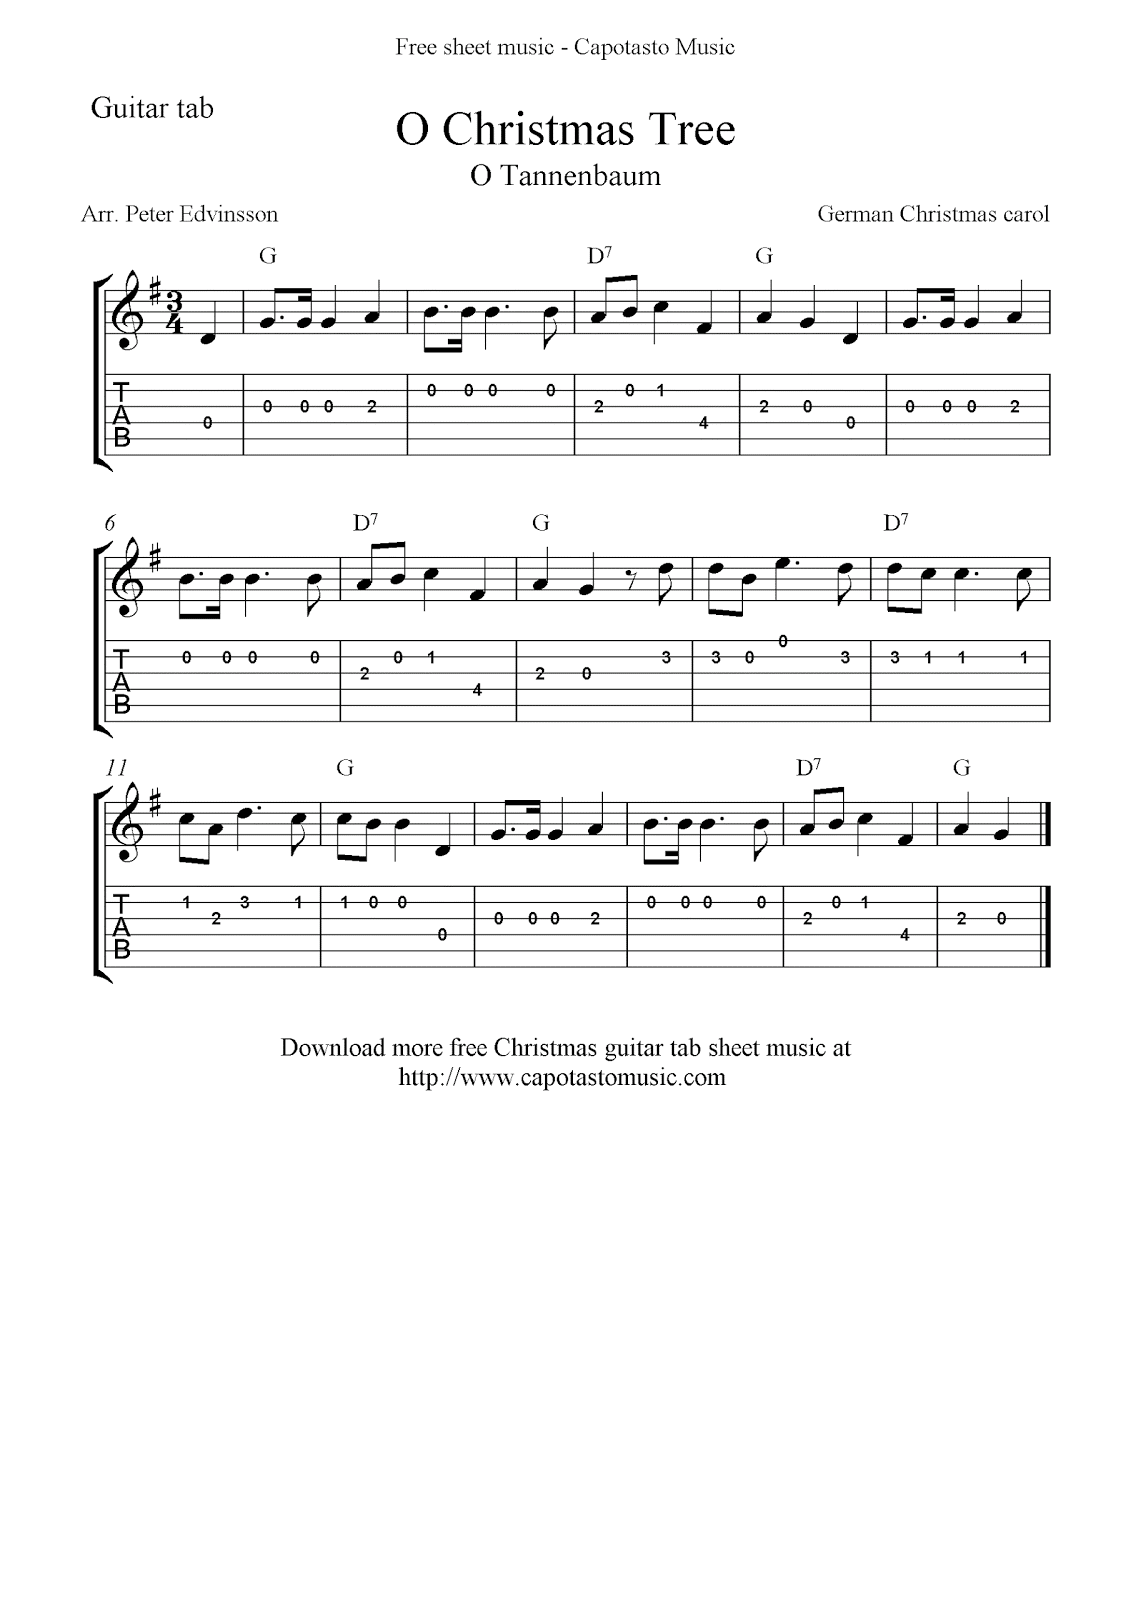 Free Christmas Guitar Tab Sheet Music - recorder white christmas sheet music guitar chords easy ...